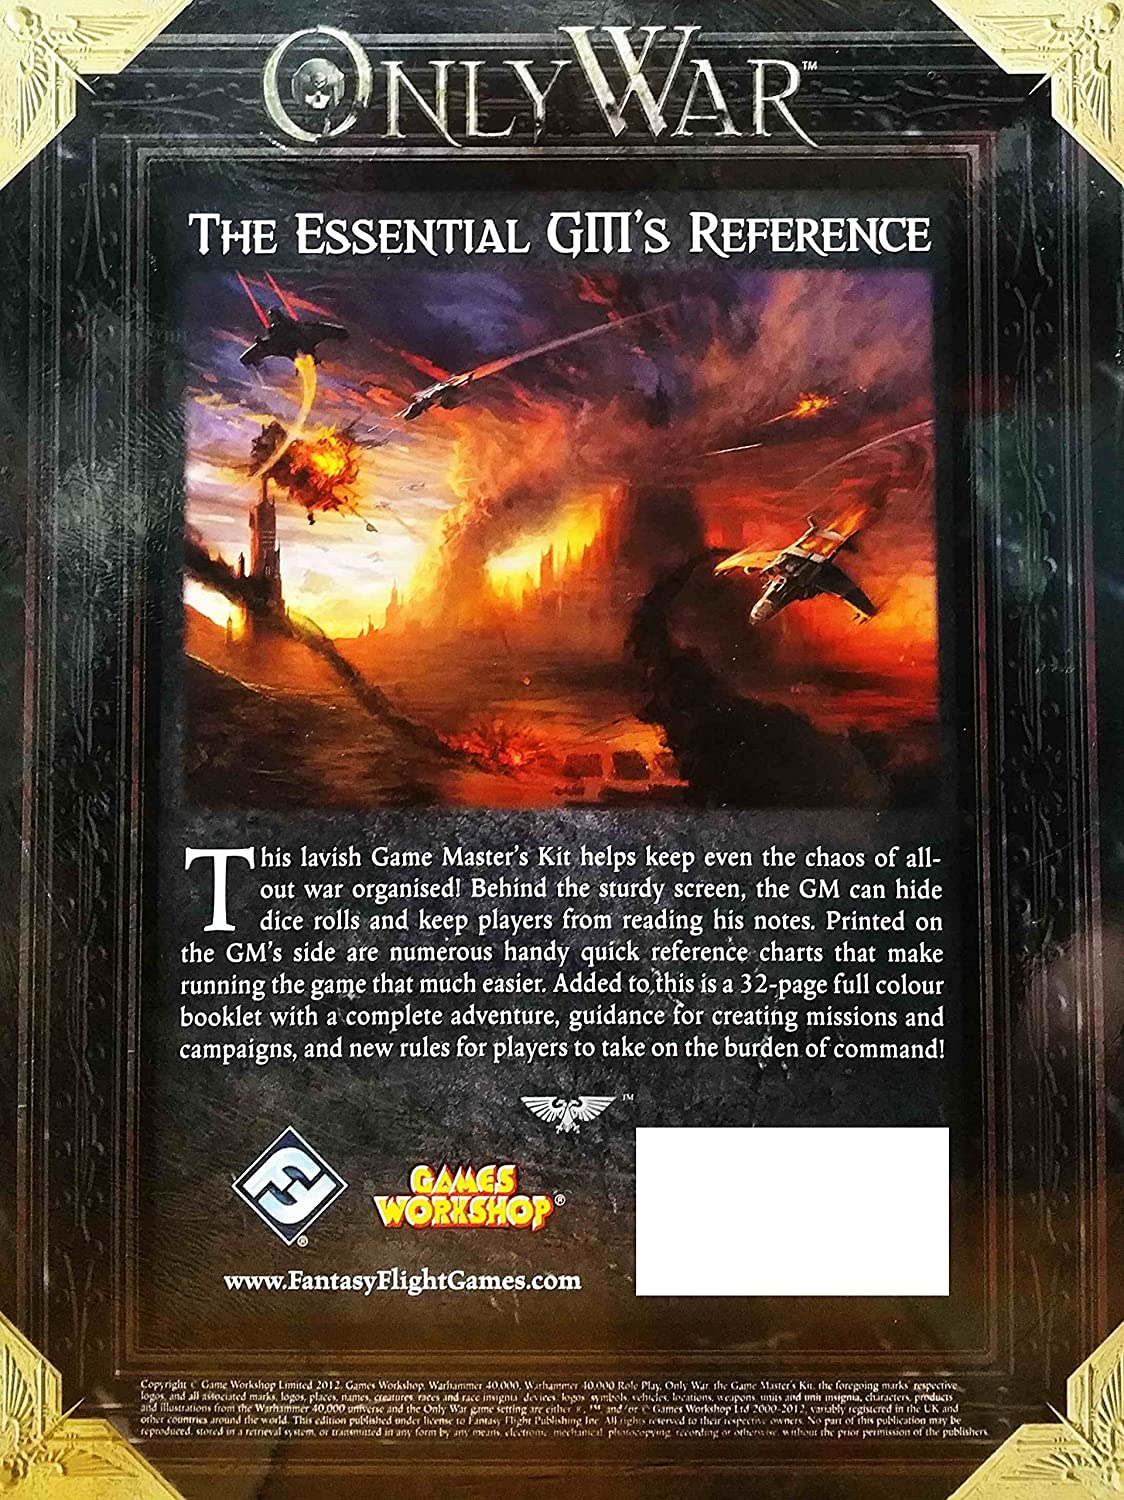 Warhammer 40,000 RPG Roleplay 40K 30K Games Workshop Forgeworld OOP Only War: Game Master/'s Kit Warhammer 40 Fantasy Flight Pub Inc IG02 Role Playing /& Fantasy ANF: Hobbies and Games GAMES /& ACTIVITIES // General Only War: Game Masters Kit